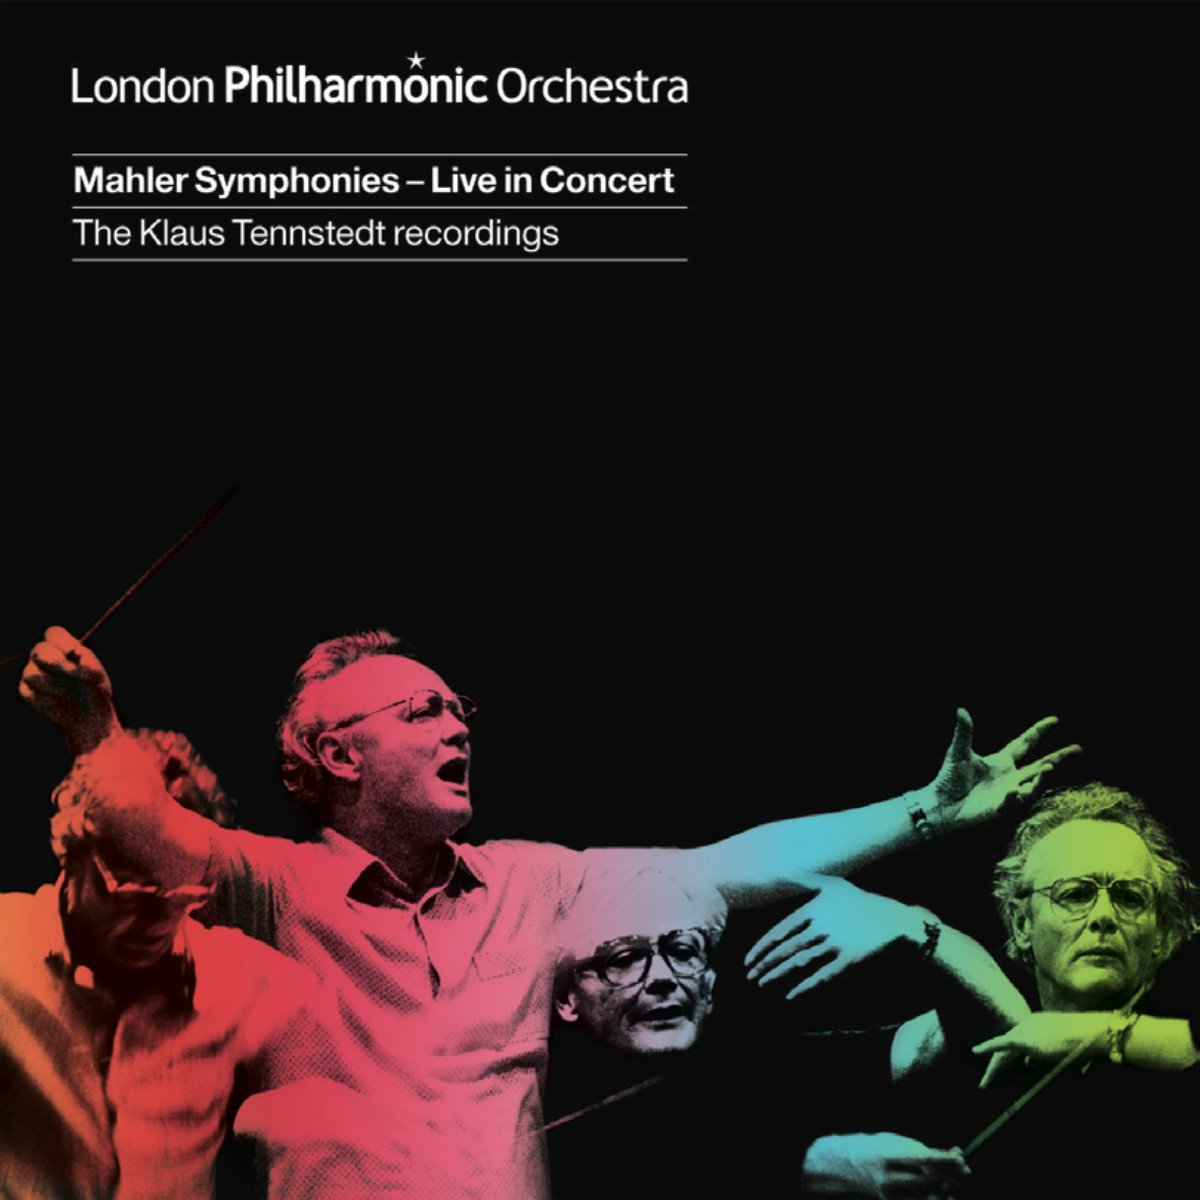 Mahler Symphonies - Live in Concert by LPO